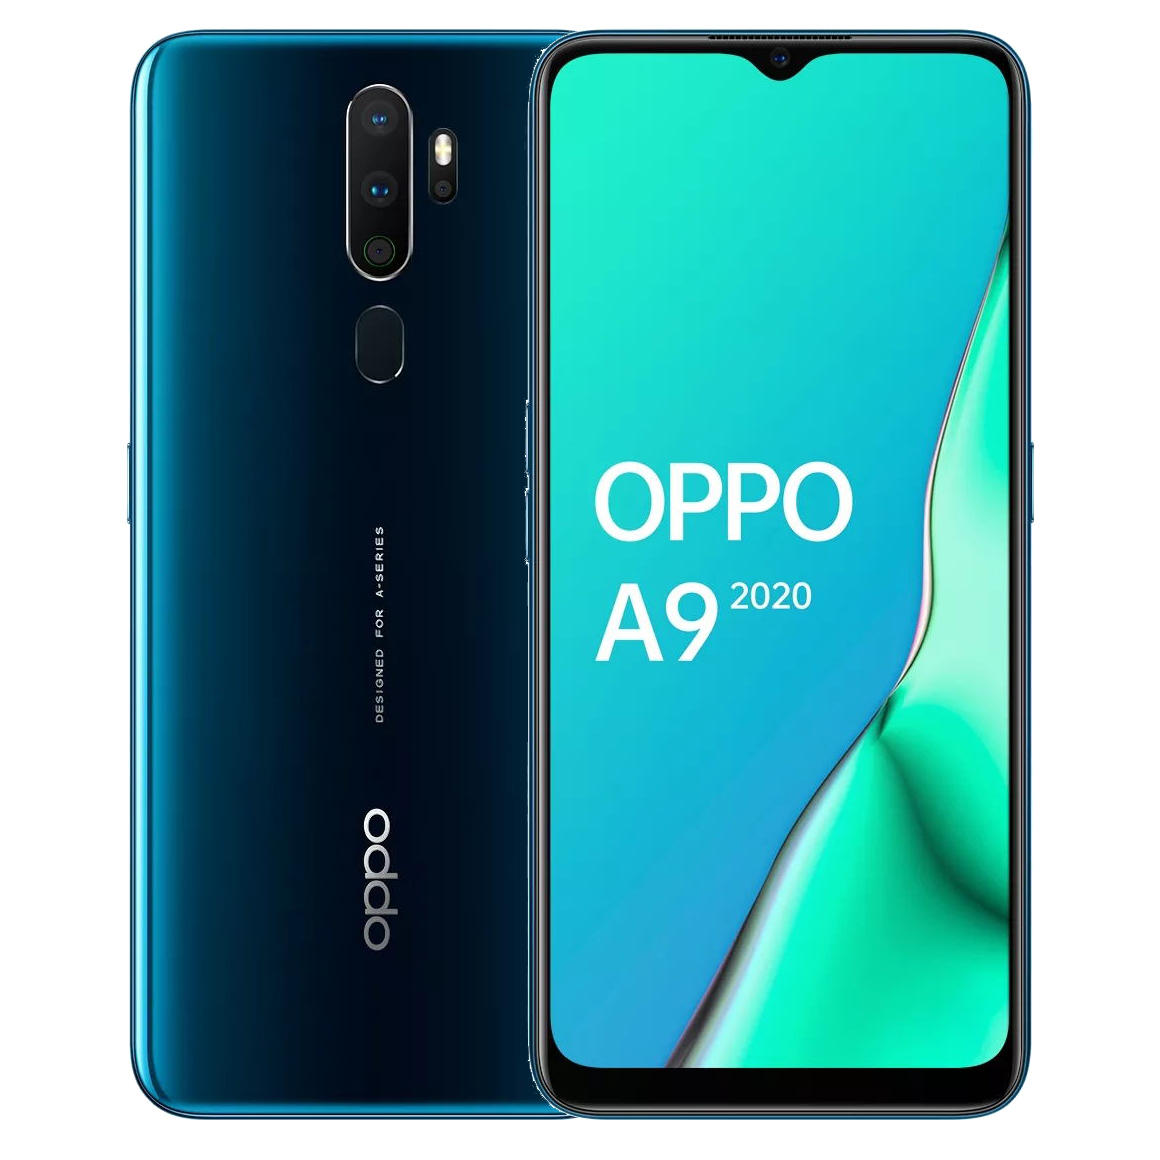 OPPO A9 2020 6.5 inch HD+ 5000mAh Android 9.0 48MP Quad Rear Cameras 8GB 128GB Snapdragon 665 Octa Core 4G Smartphone - Marine Green